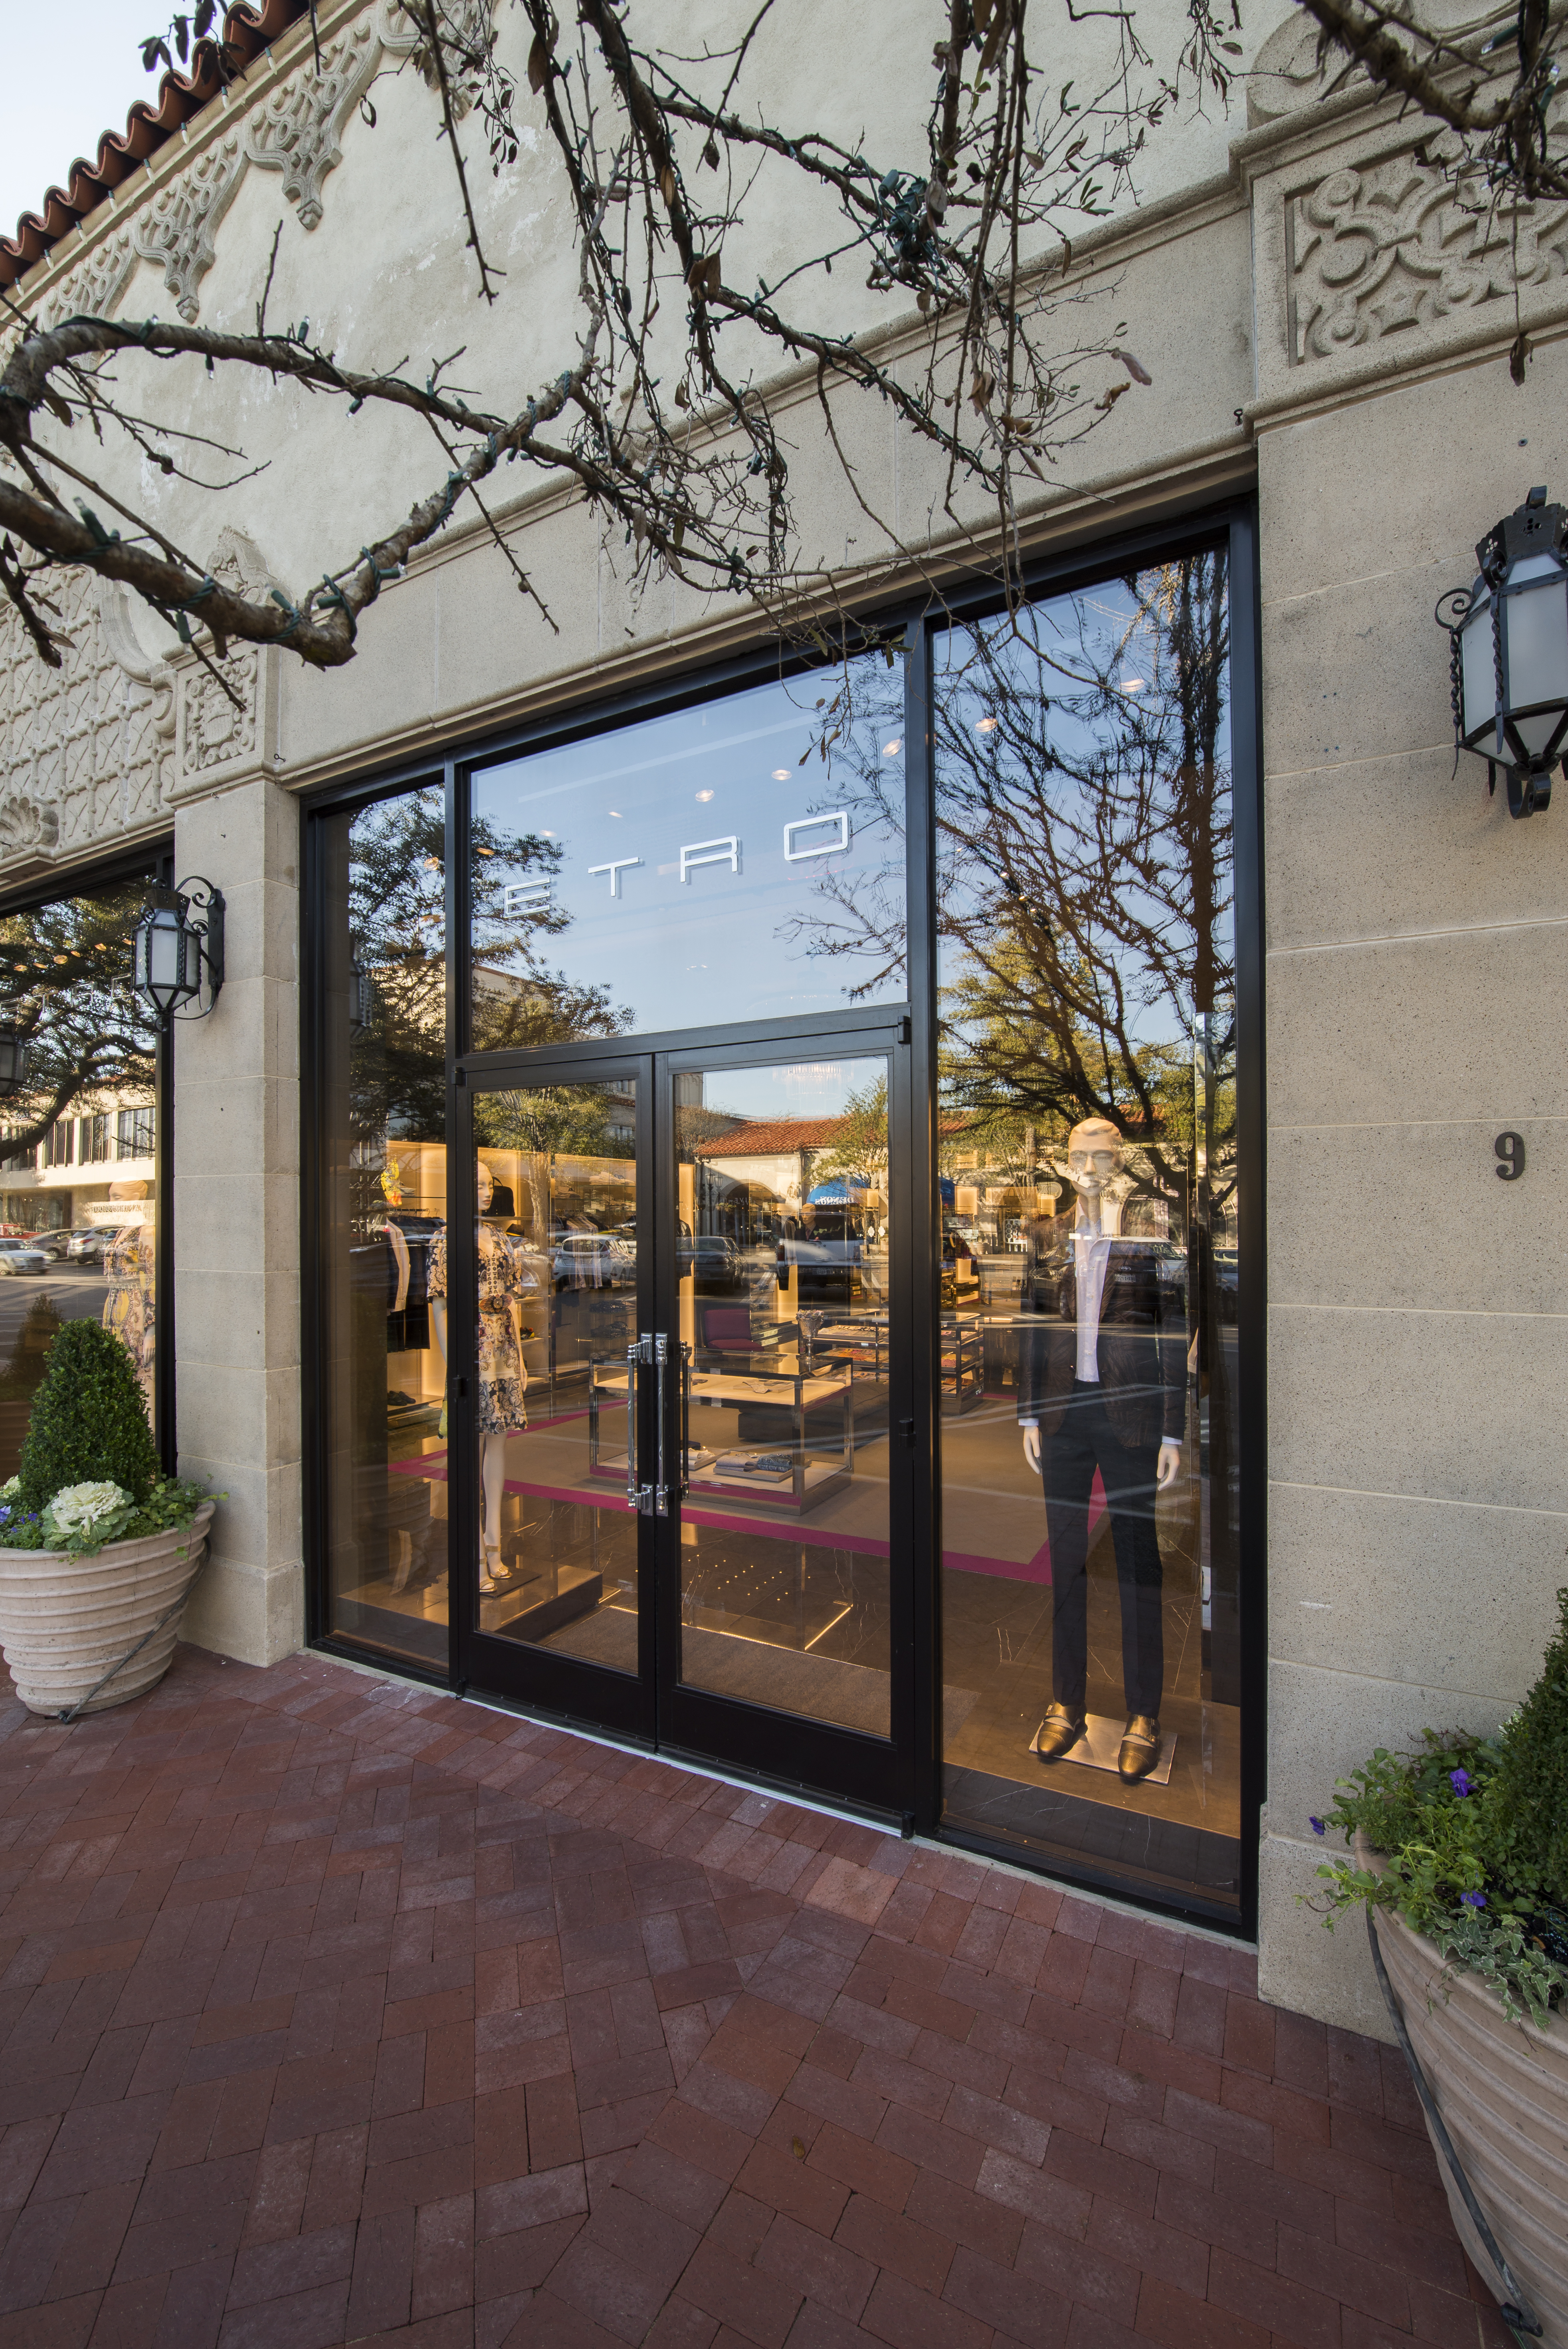 Etro opened it's first Dallas boutique at Highland Park Village in 2016.